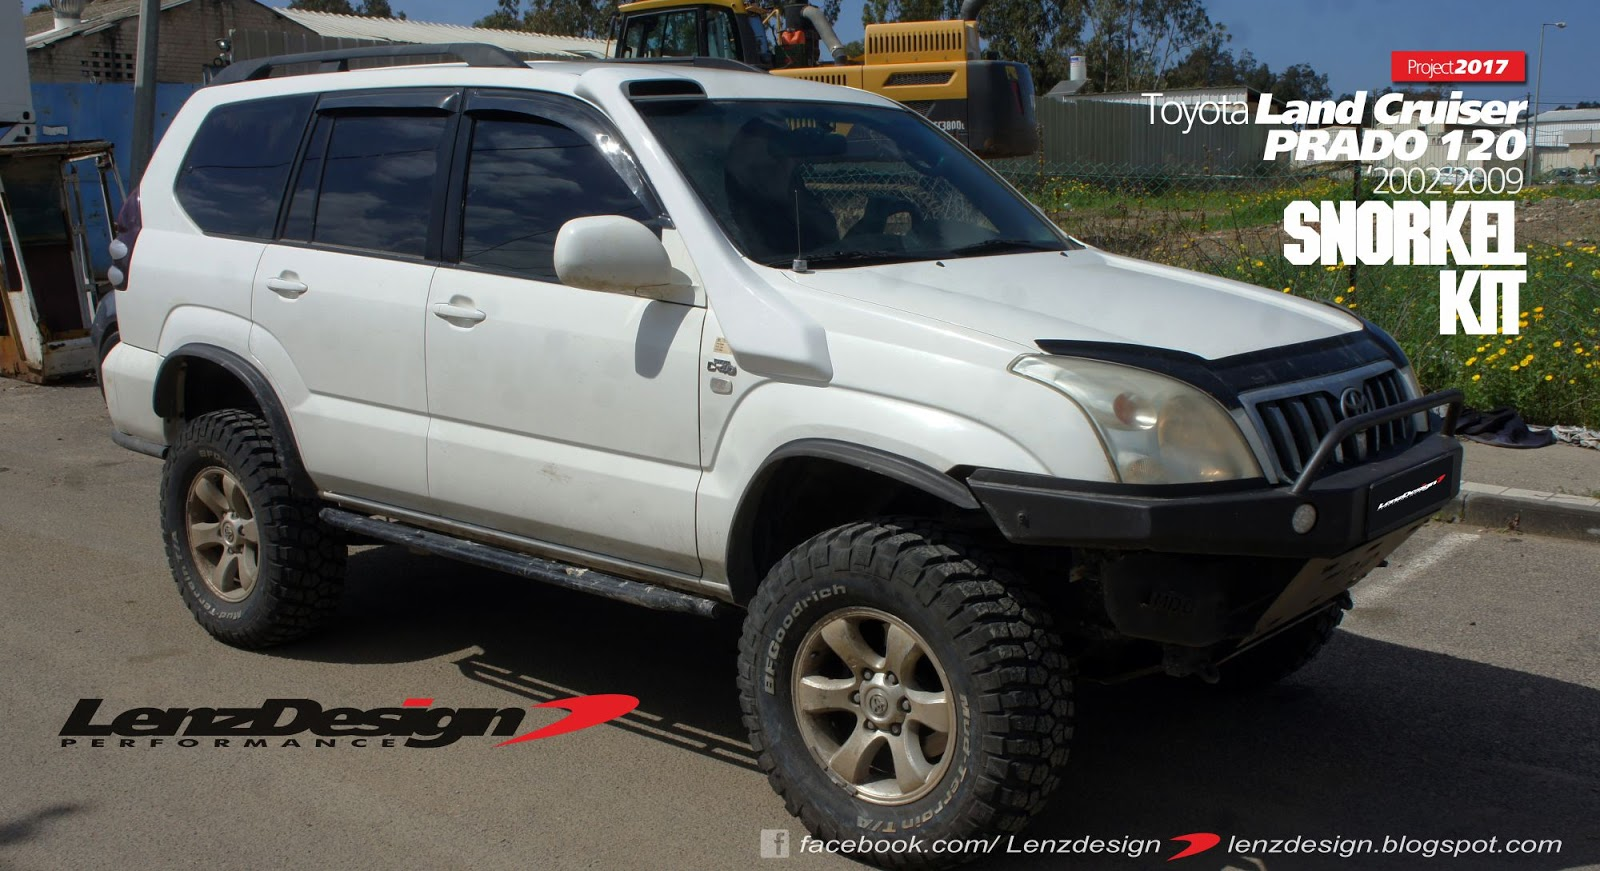 Toyota Land Cruiser Prado 120 Lexus Gx 470 Snorkel Kit Lenzdesign Manufactured From Vacuum Frp Unpainted We Ship Woldwide Questions Please Contact Us For Details Lenzdesignautogmailcom